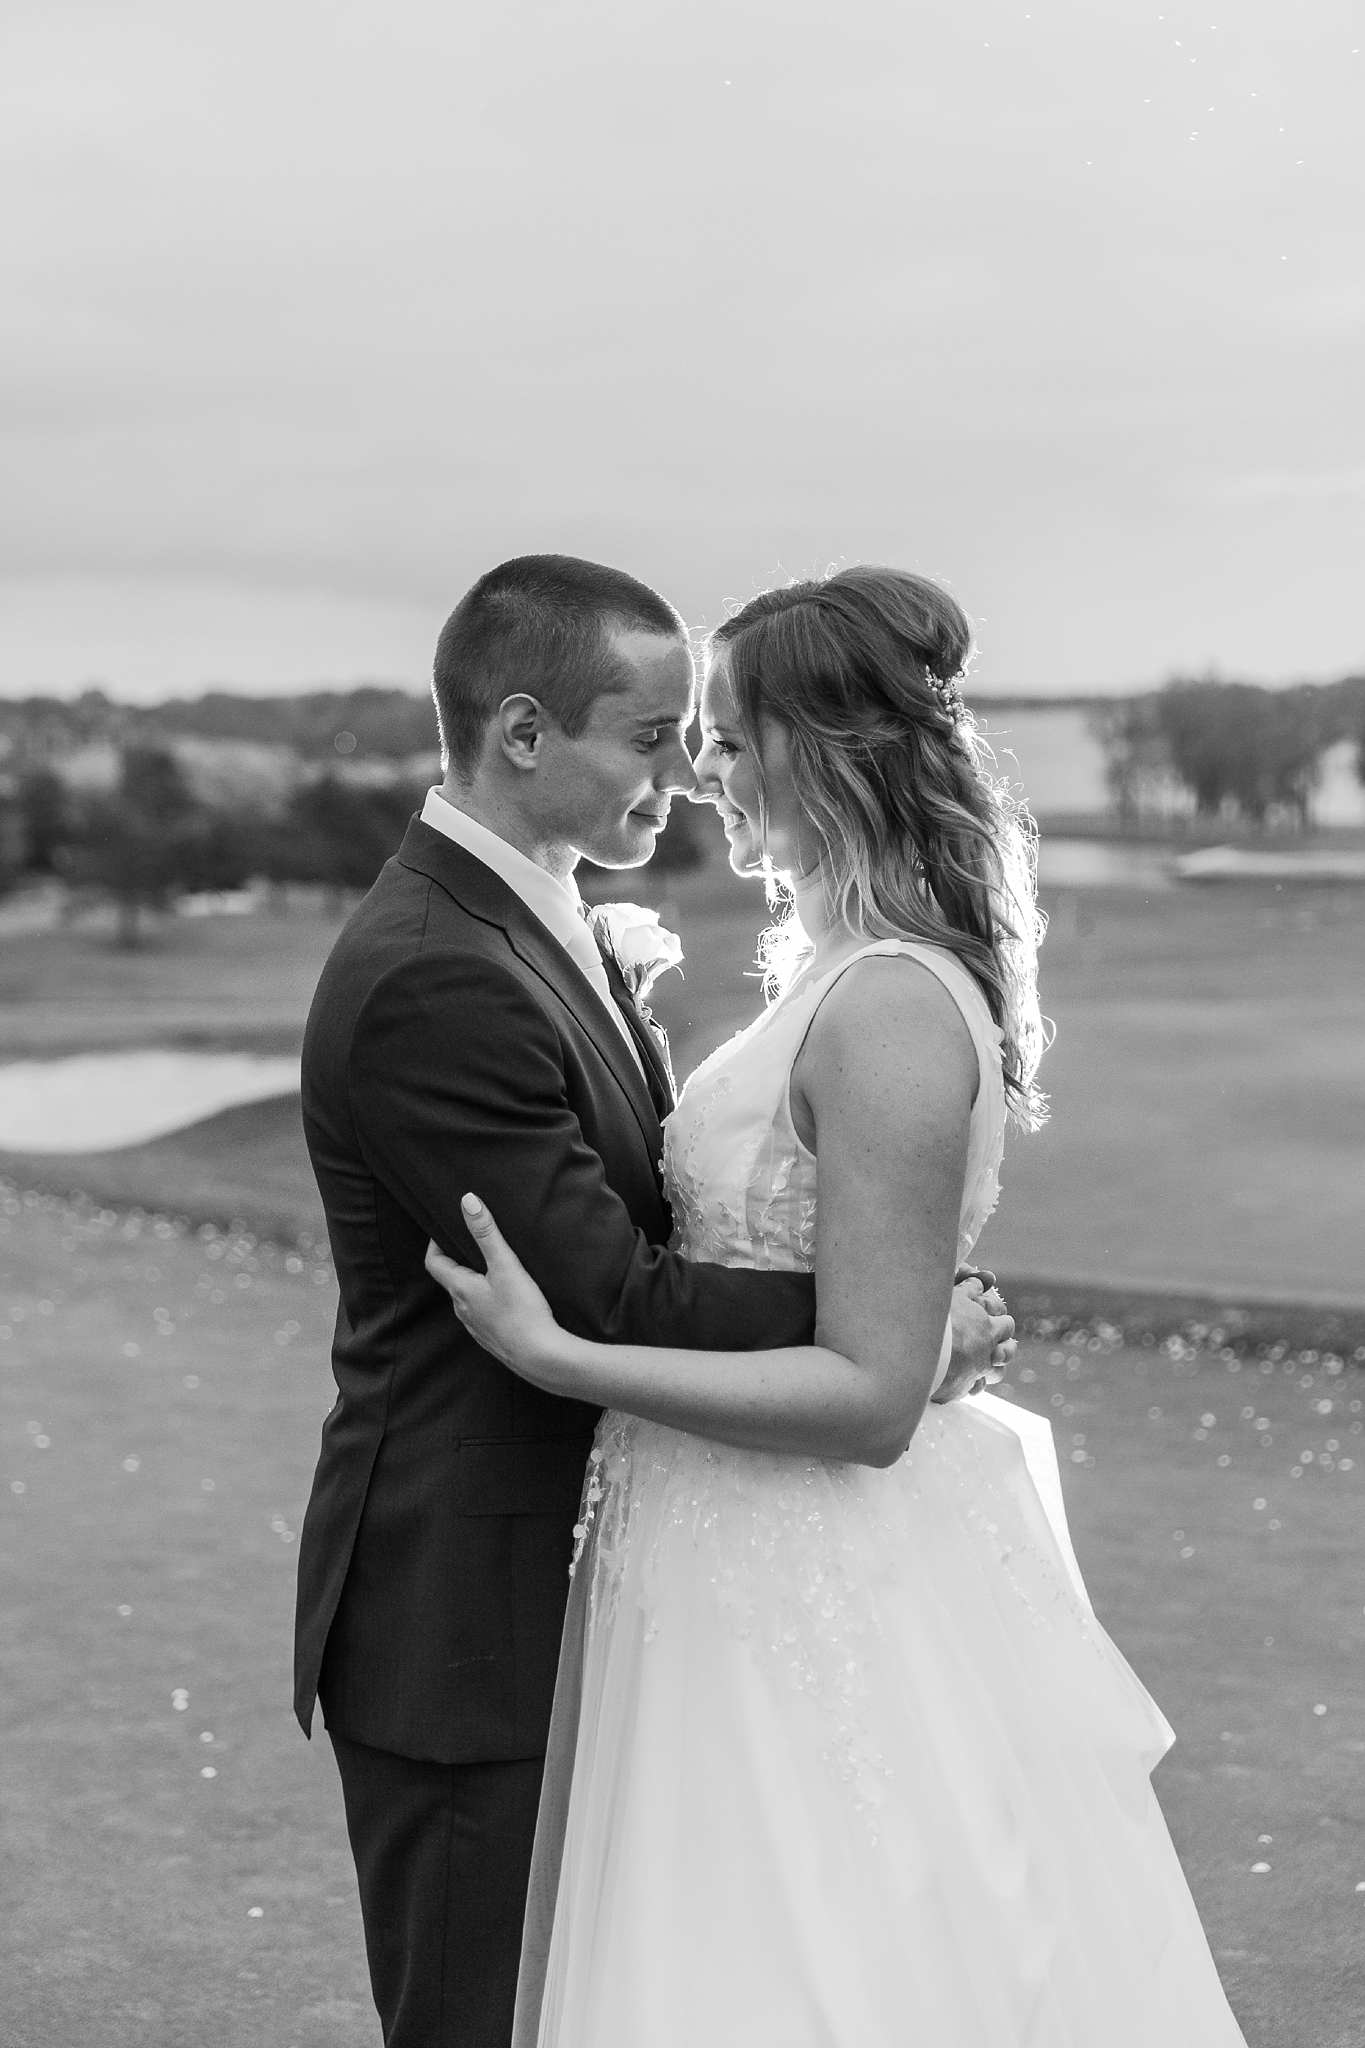 joyful-candid-laid-back-wedding-photos-in-ann-arbor-michigan-and-at-the-eagle-crest-golf-resort-by-courtney-carolyn-photography_0124.jpg